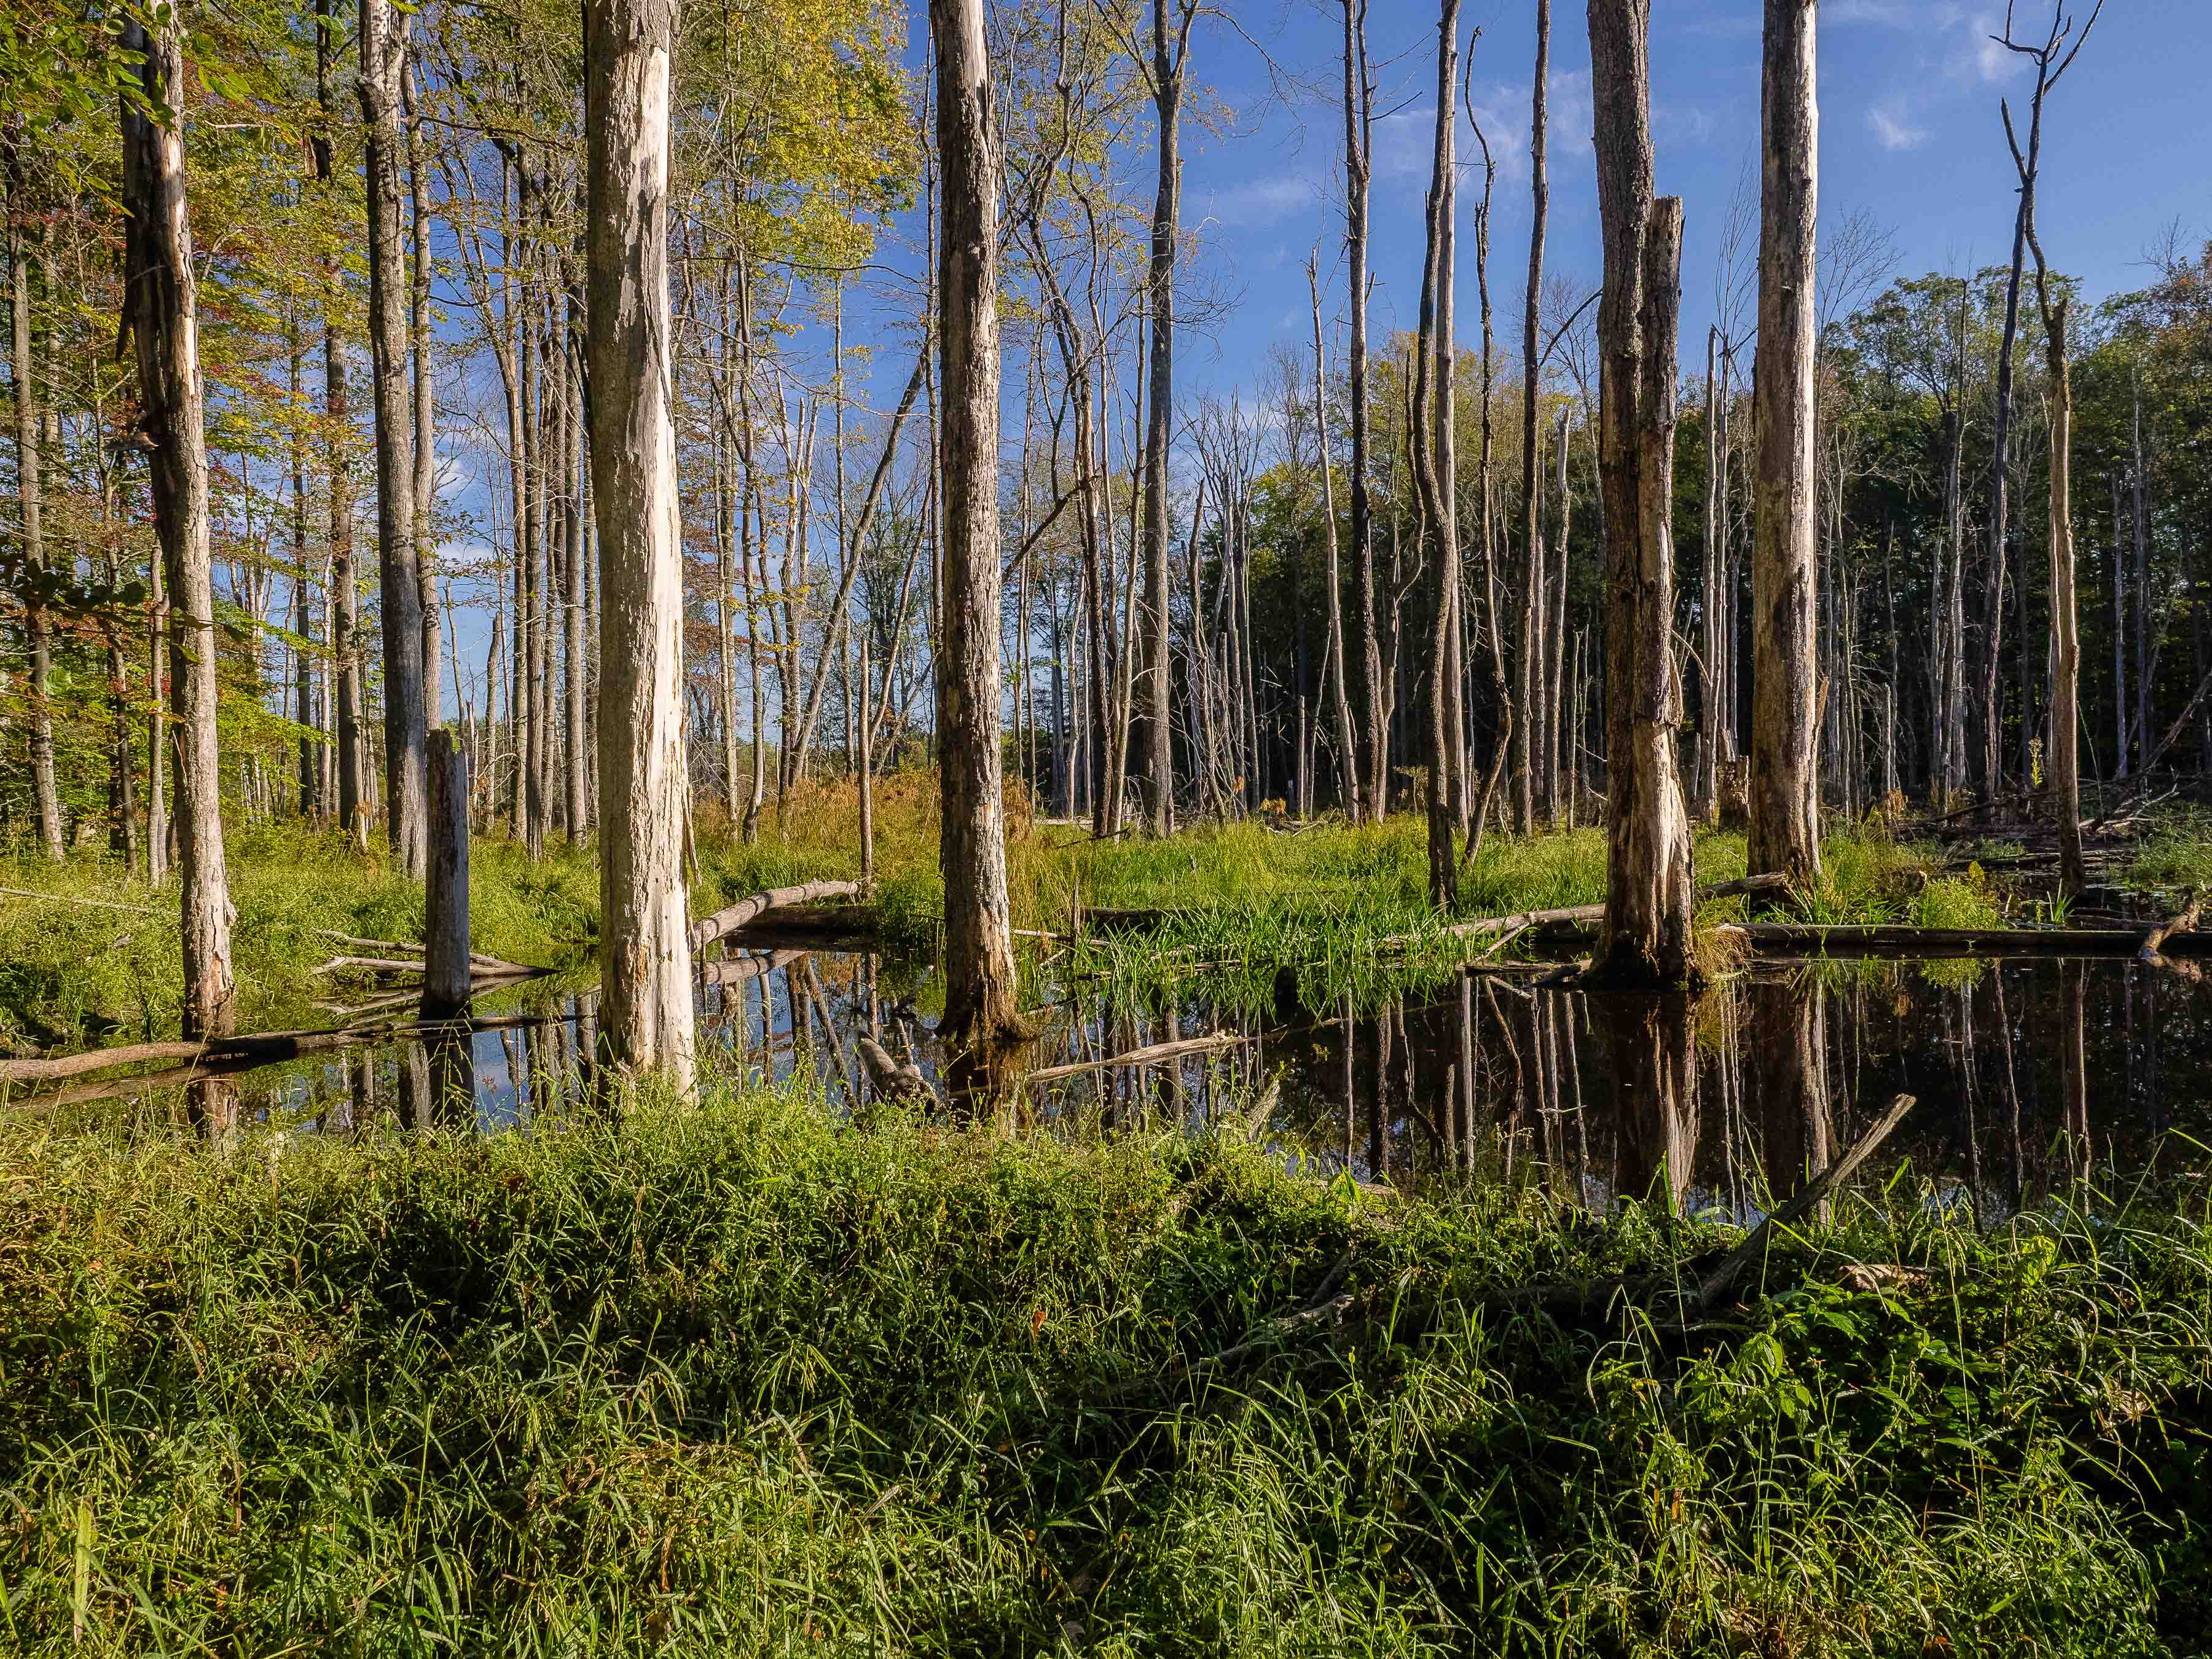 Wetland at Morgan Swamp Preserve